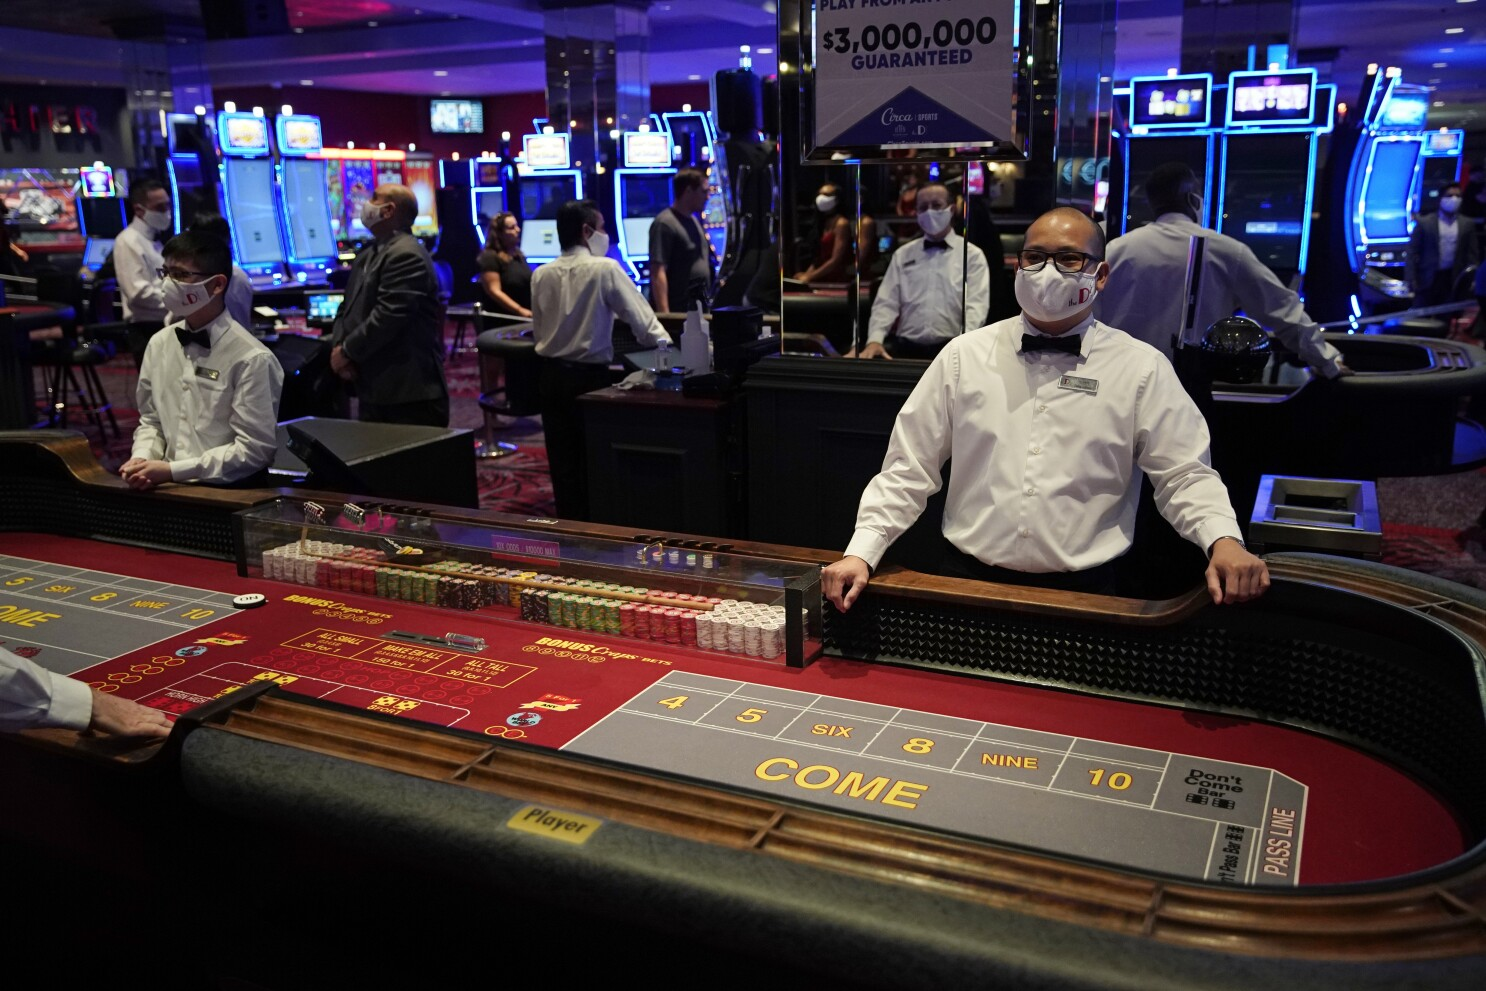 Las Vegas casinos reopen after historic coronavirus closure - Los Angeles  Times